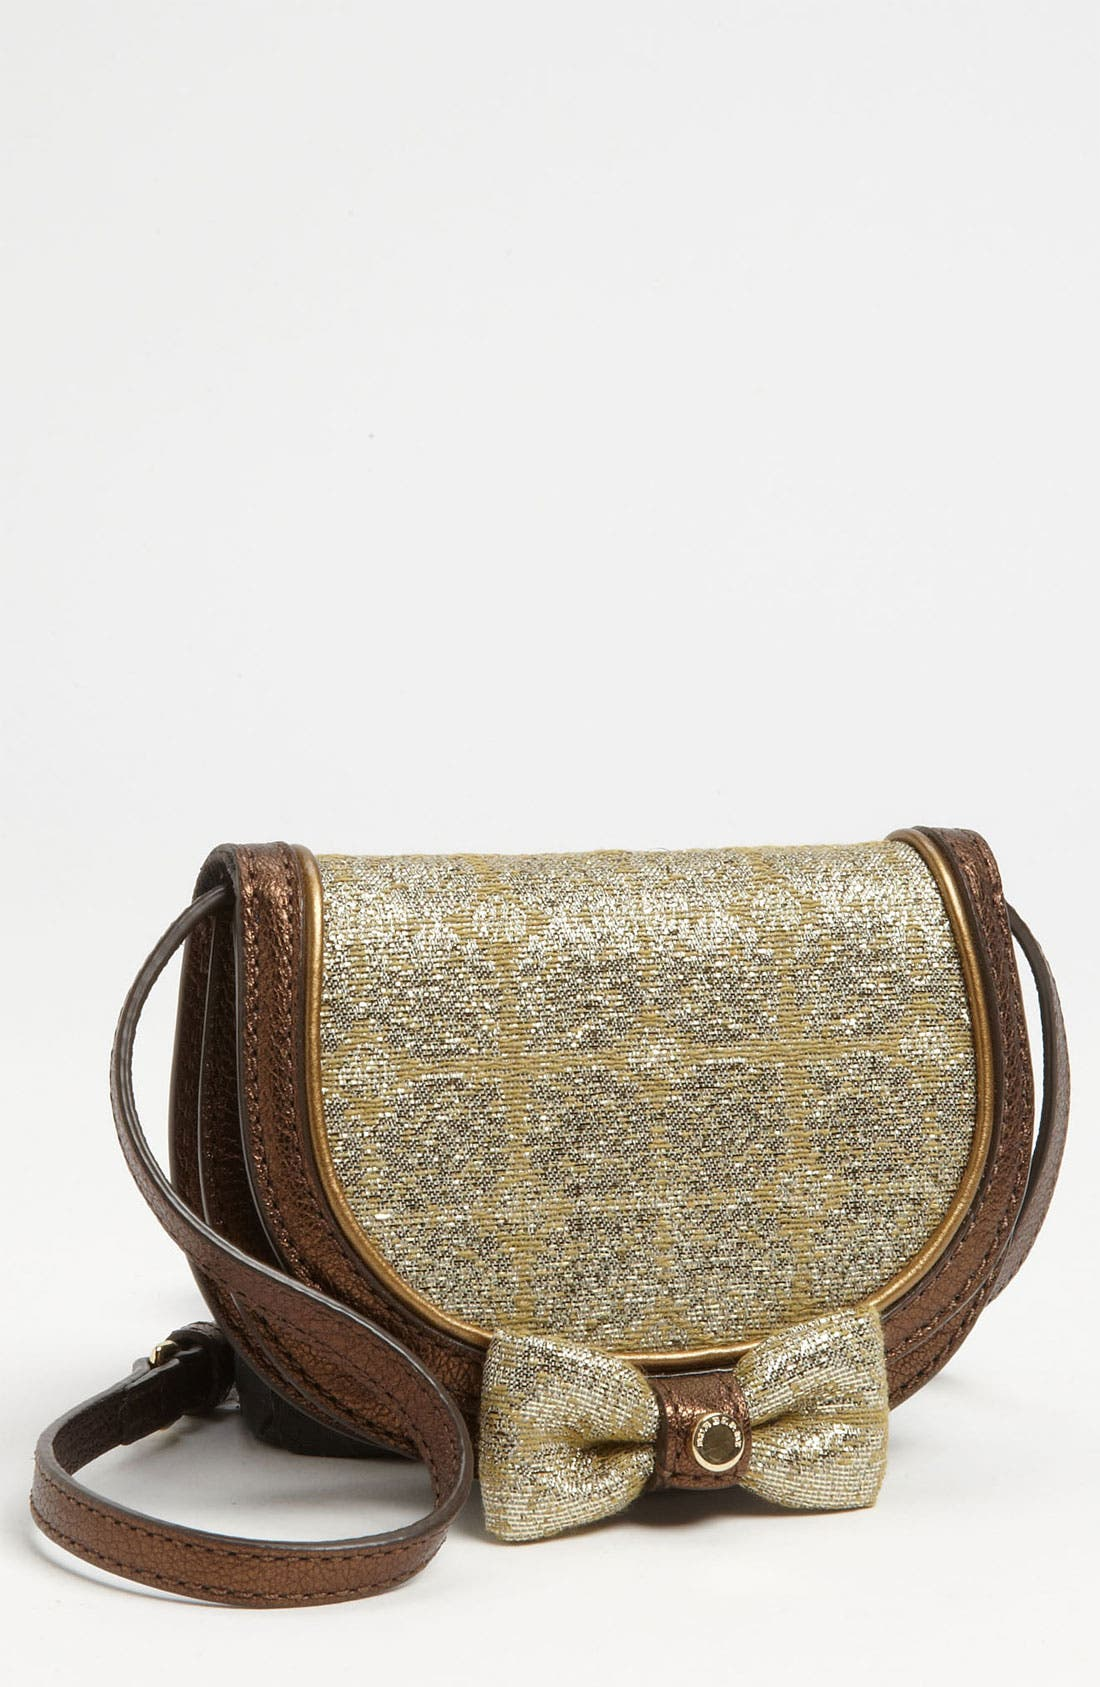 Alternate Image 1 Selected - Burberry 'Cora' Jacquard Bow Crossbody Bag (Girls)